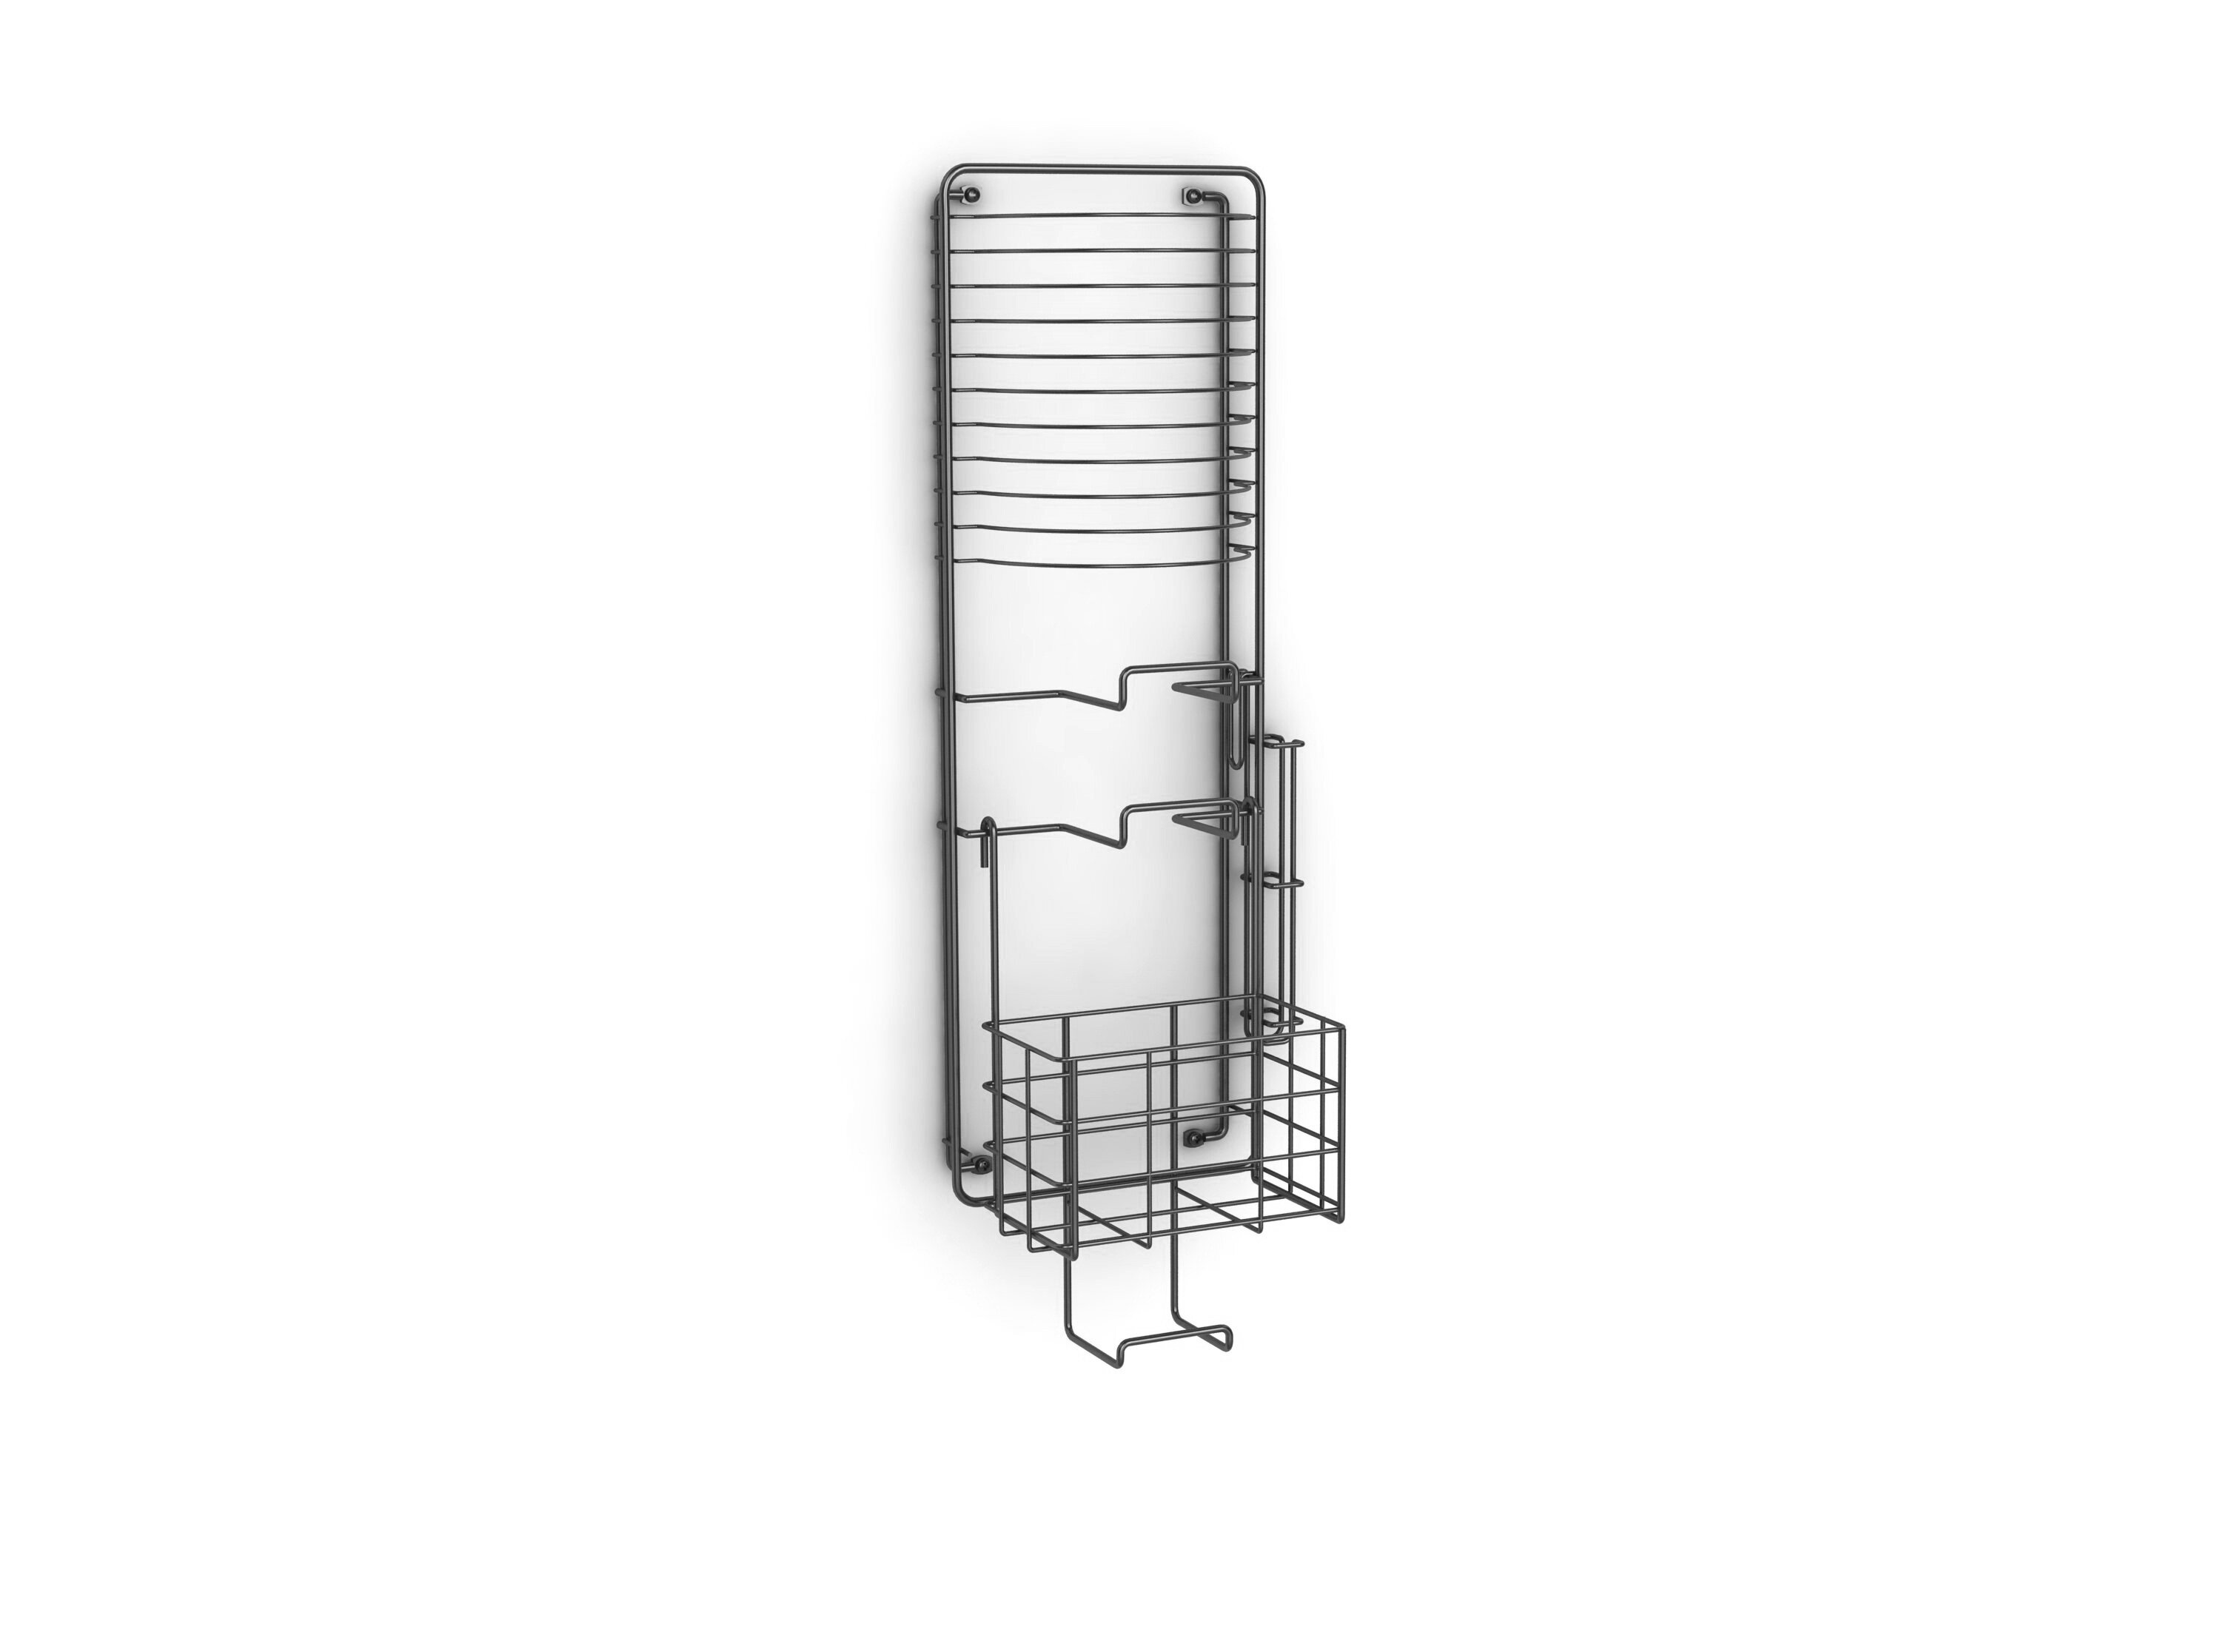 Atlantic Wall Mounted Storage Rack U0026 Reviews | Wayfair